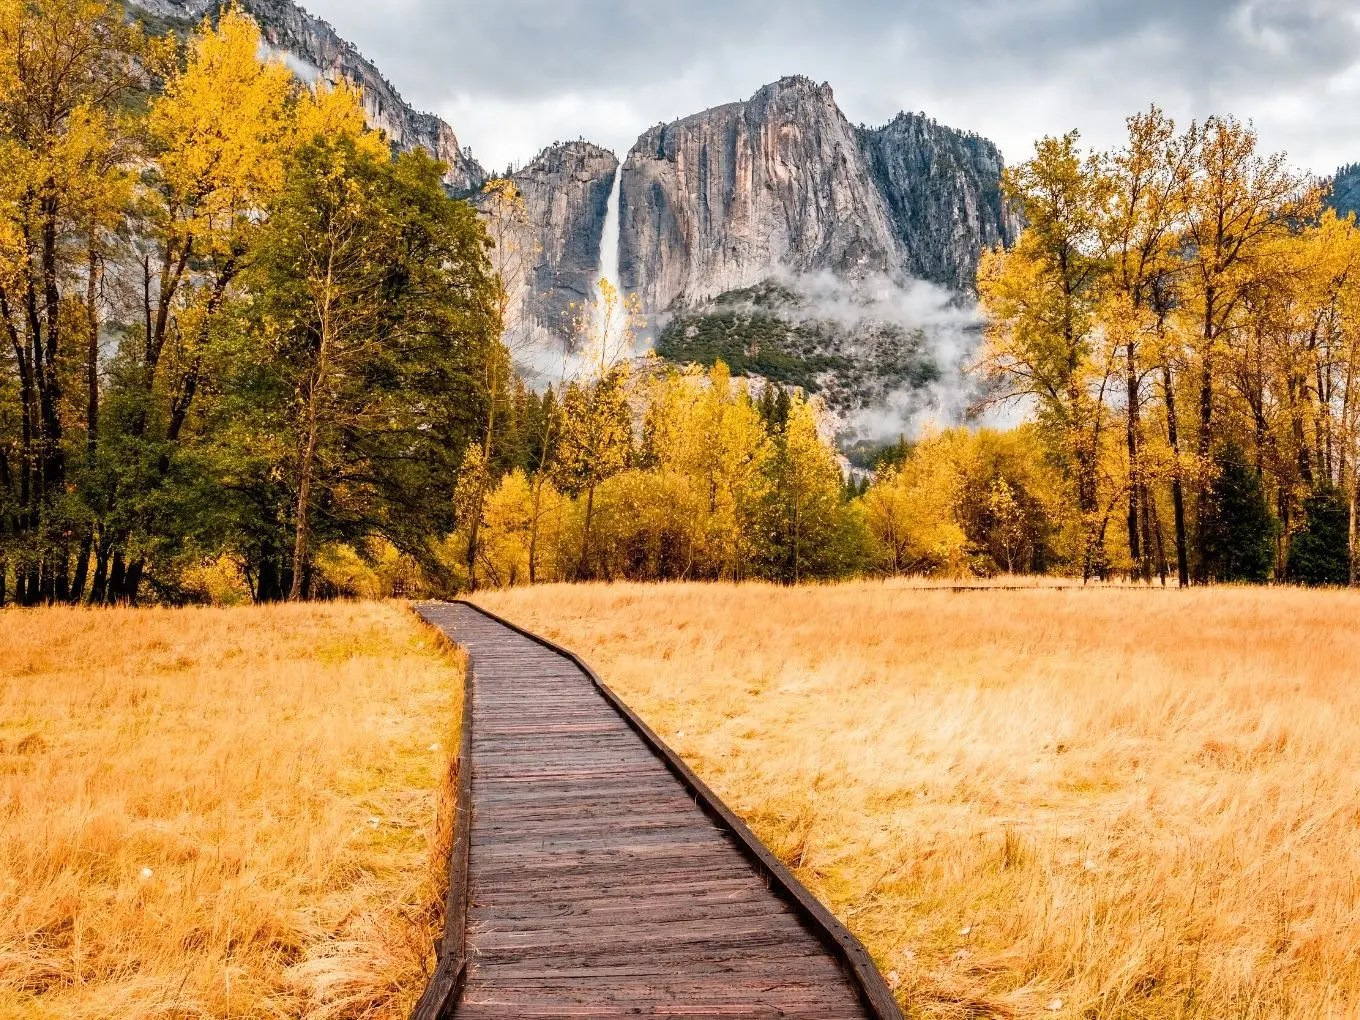 Yosemite National Park | The Ultimate Guide To Yosemite National Park